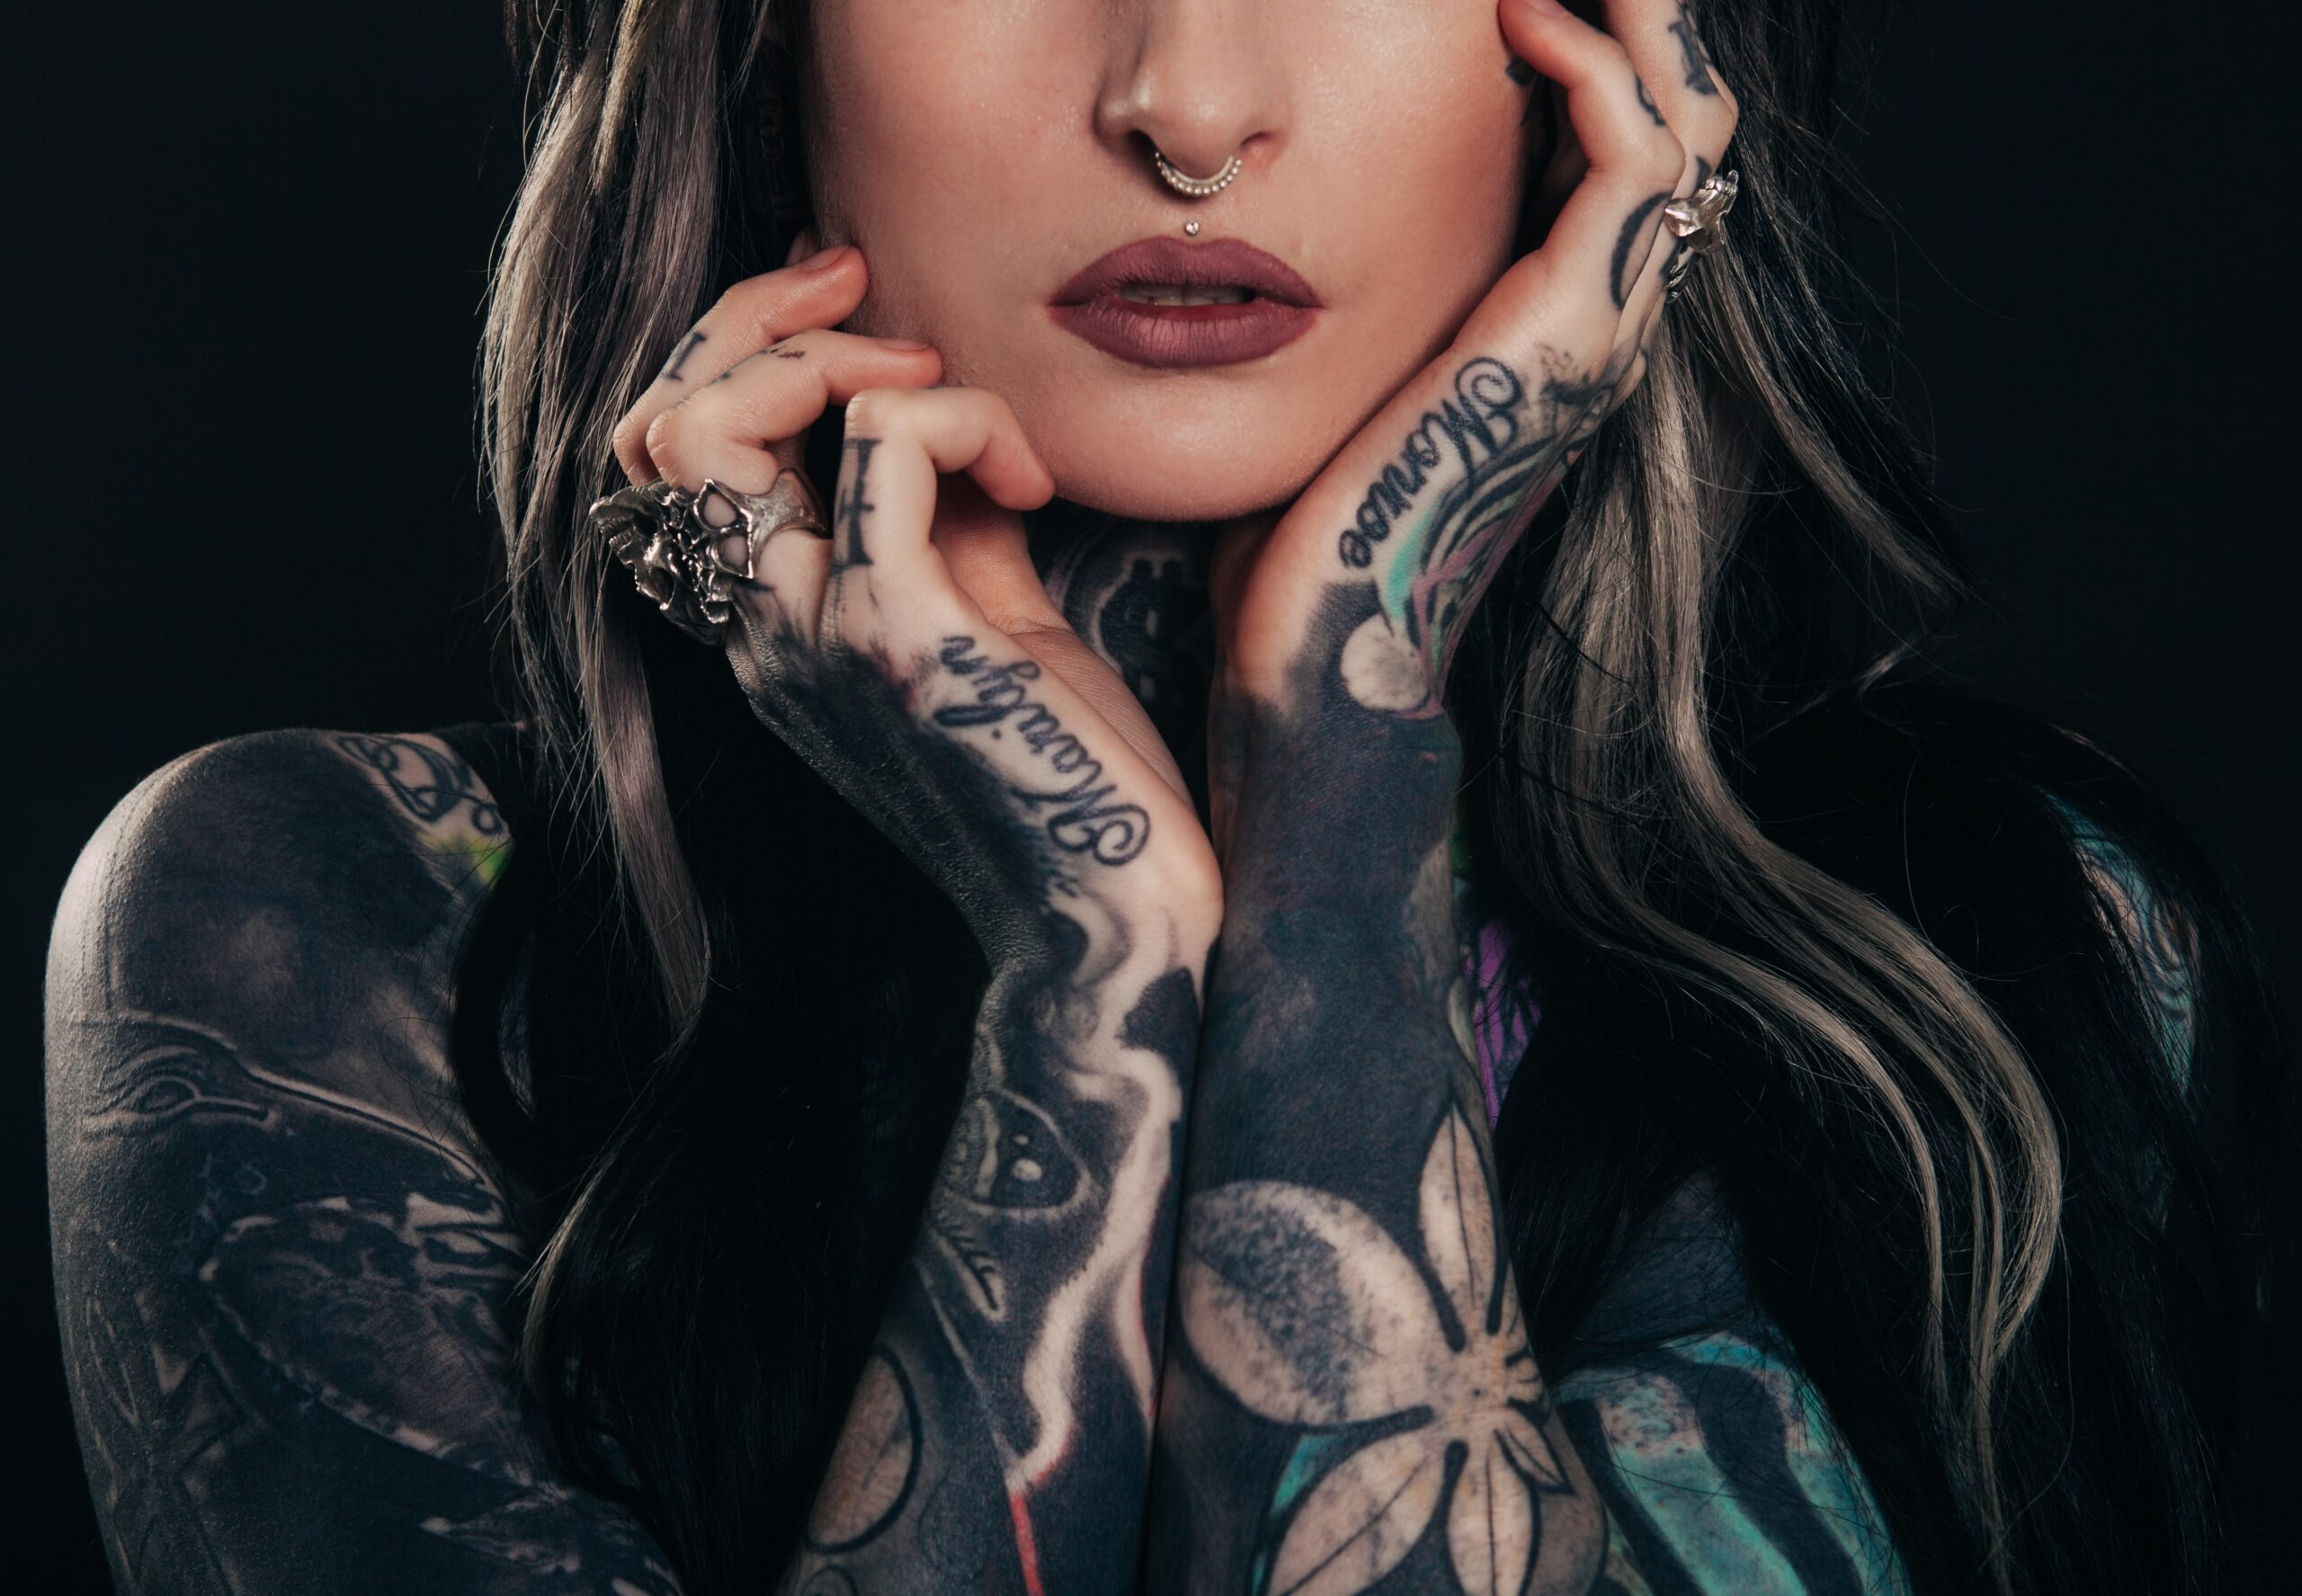 Tattoo aftercare guide